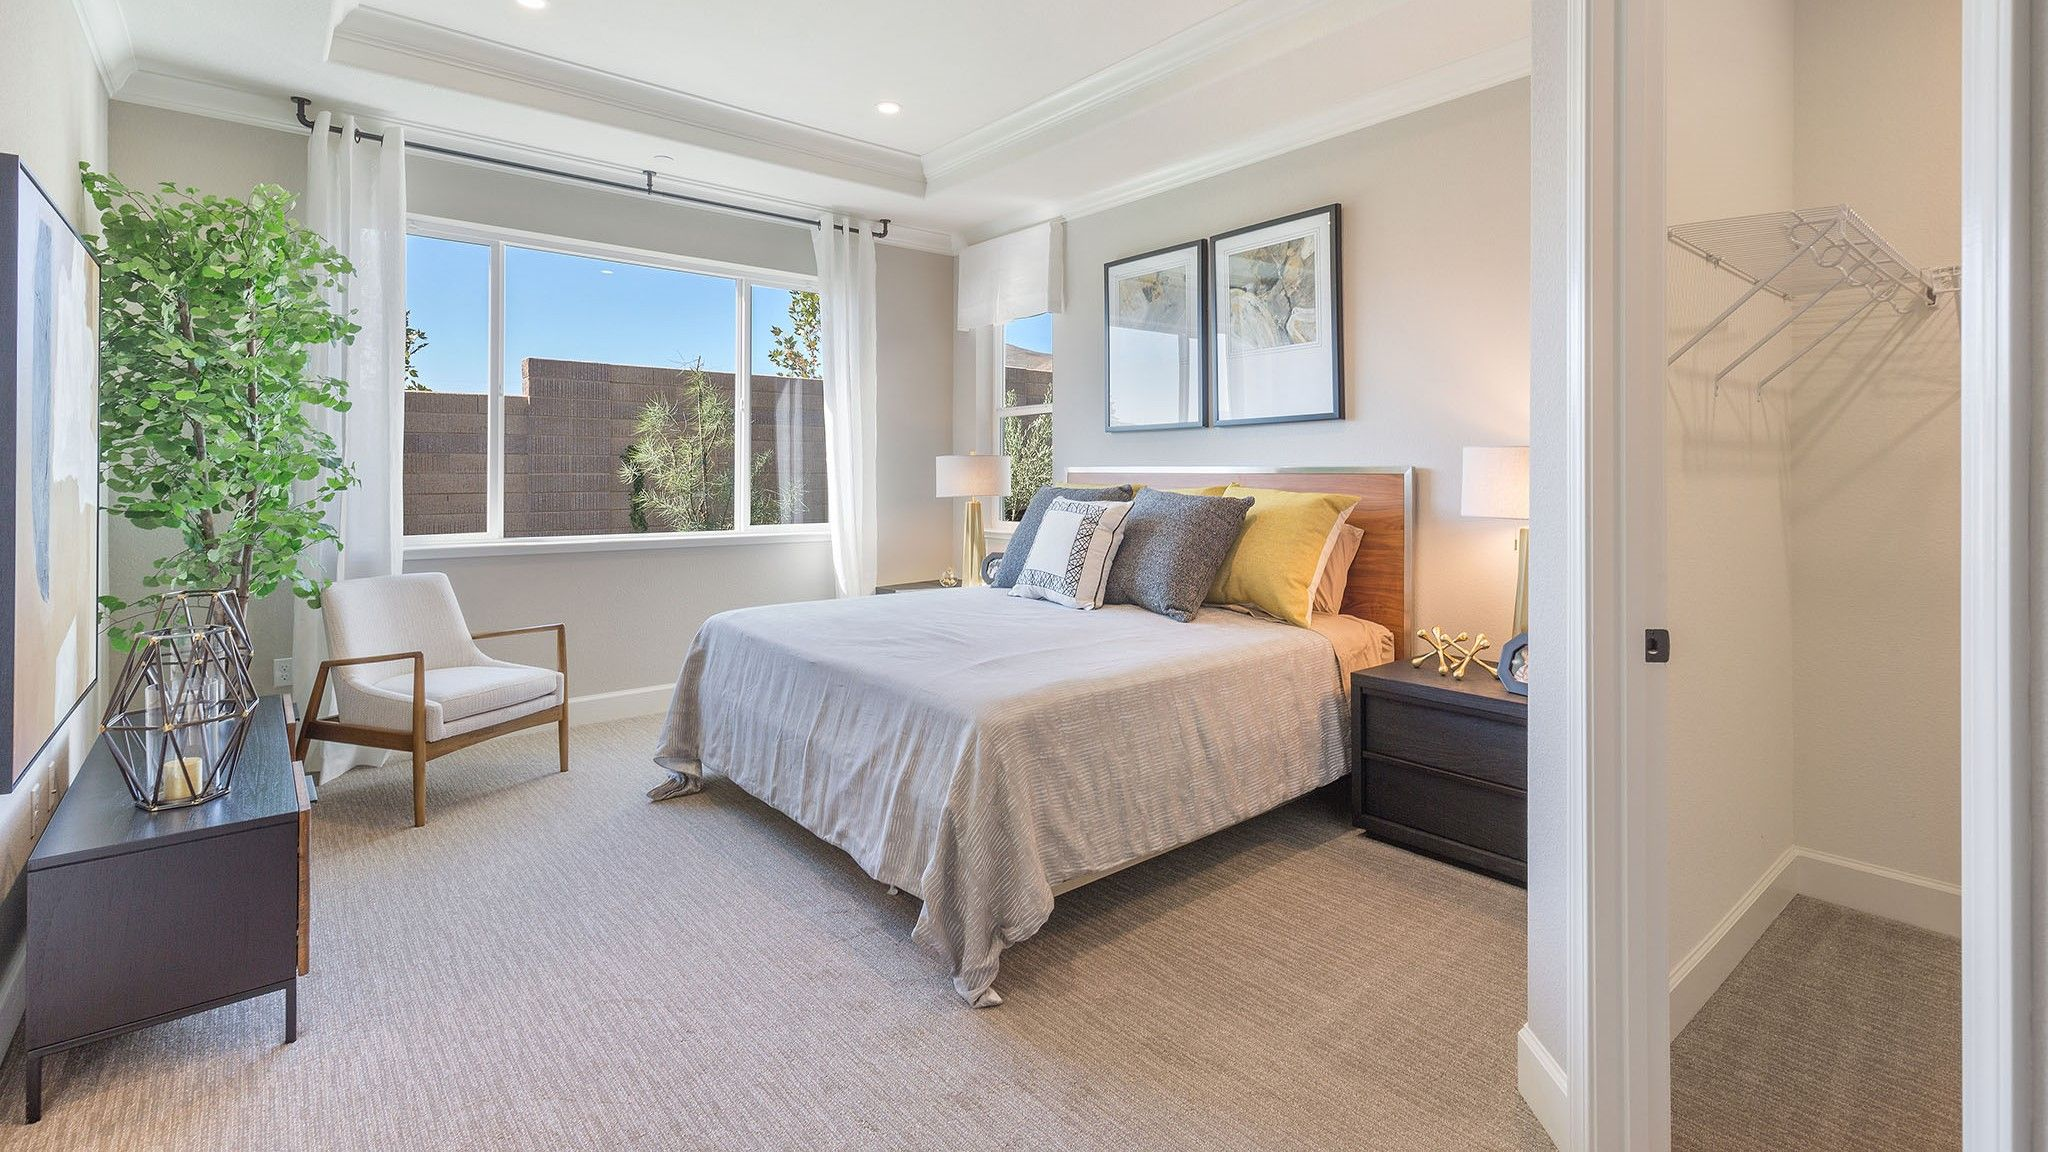 Bedroom featured in the Adley By Seeno Homes in Vallejo-Napa, CA